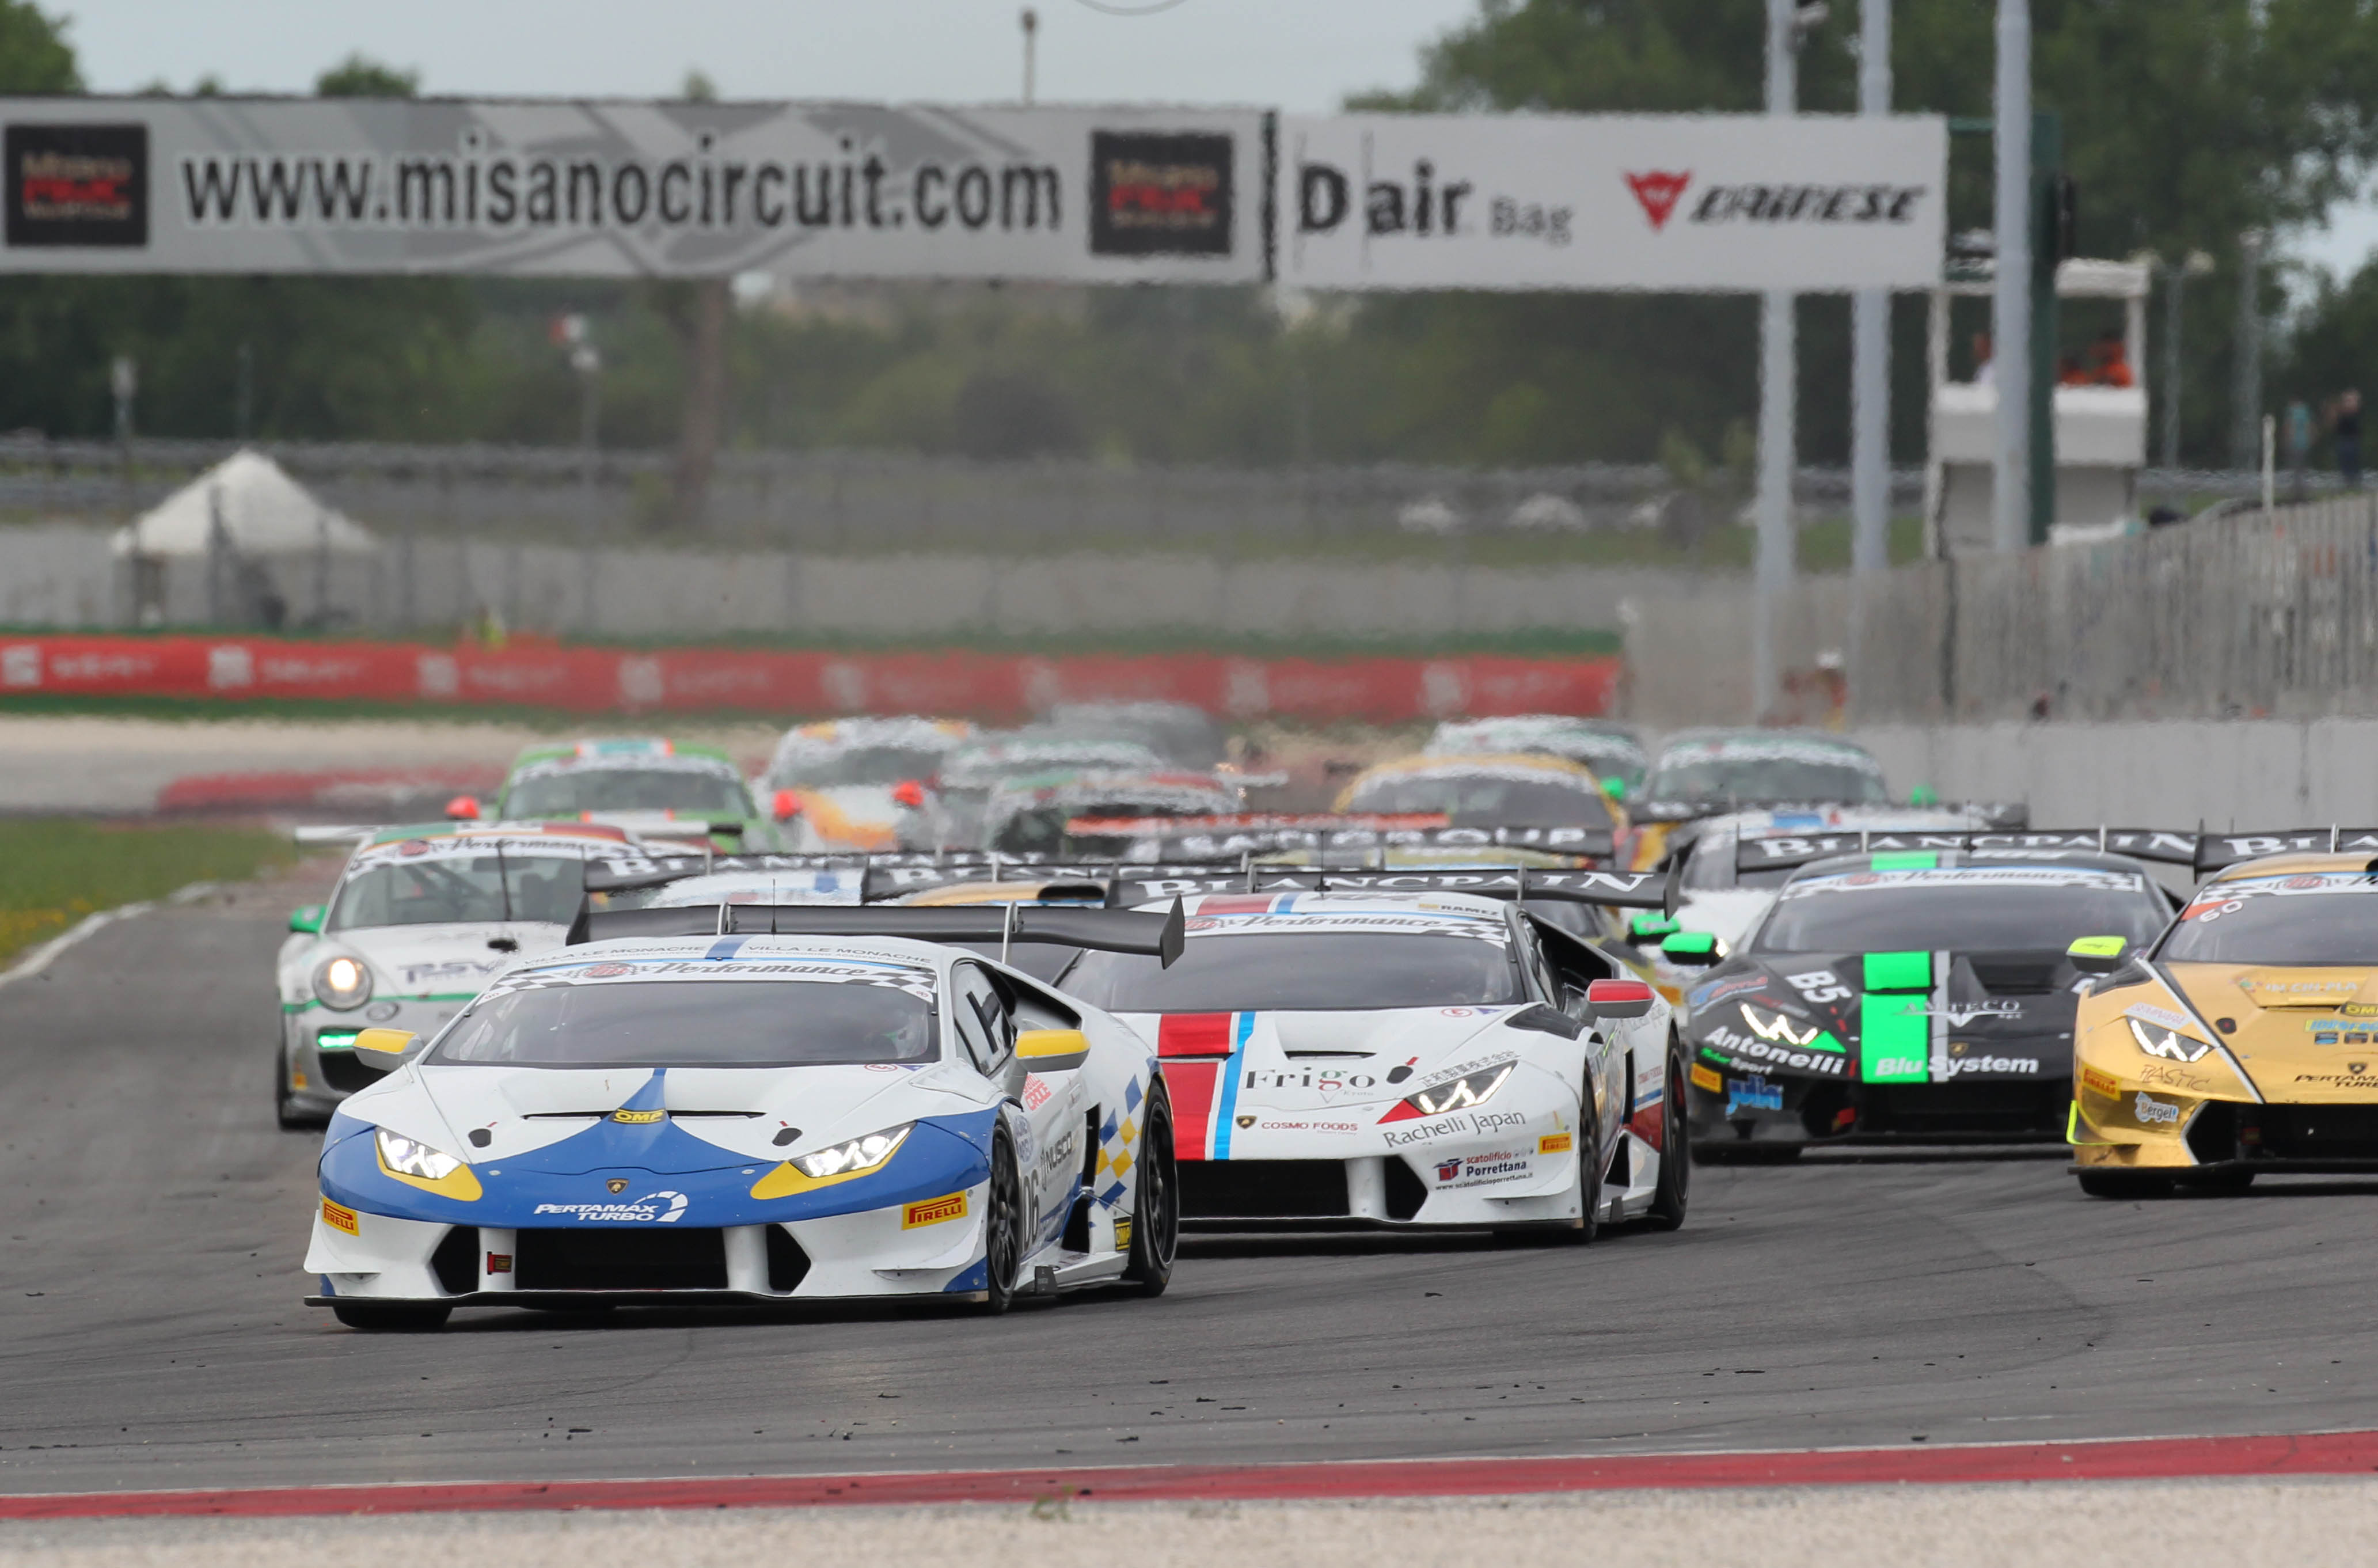 ALL FOUR VSR DRIVERS SAVOUR VICTORY AT MISANO AS SOSPIRI'S TEAM CLAIMS FIRST GT 1-2